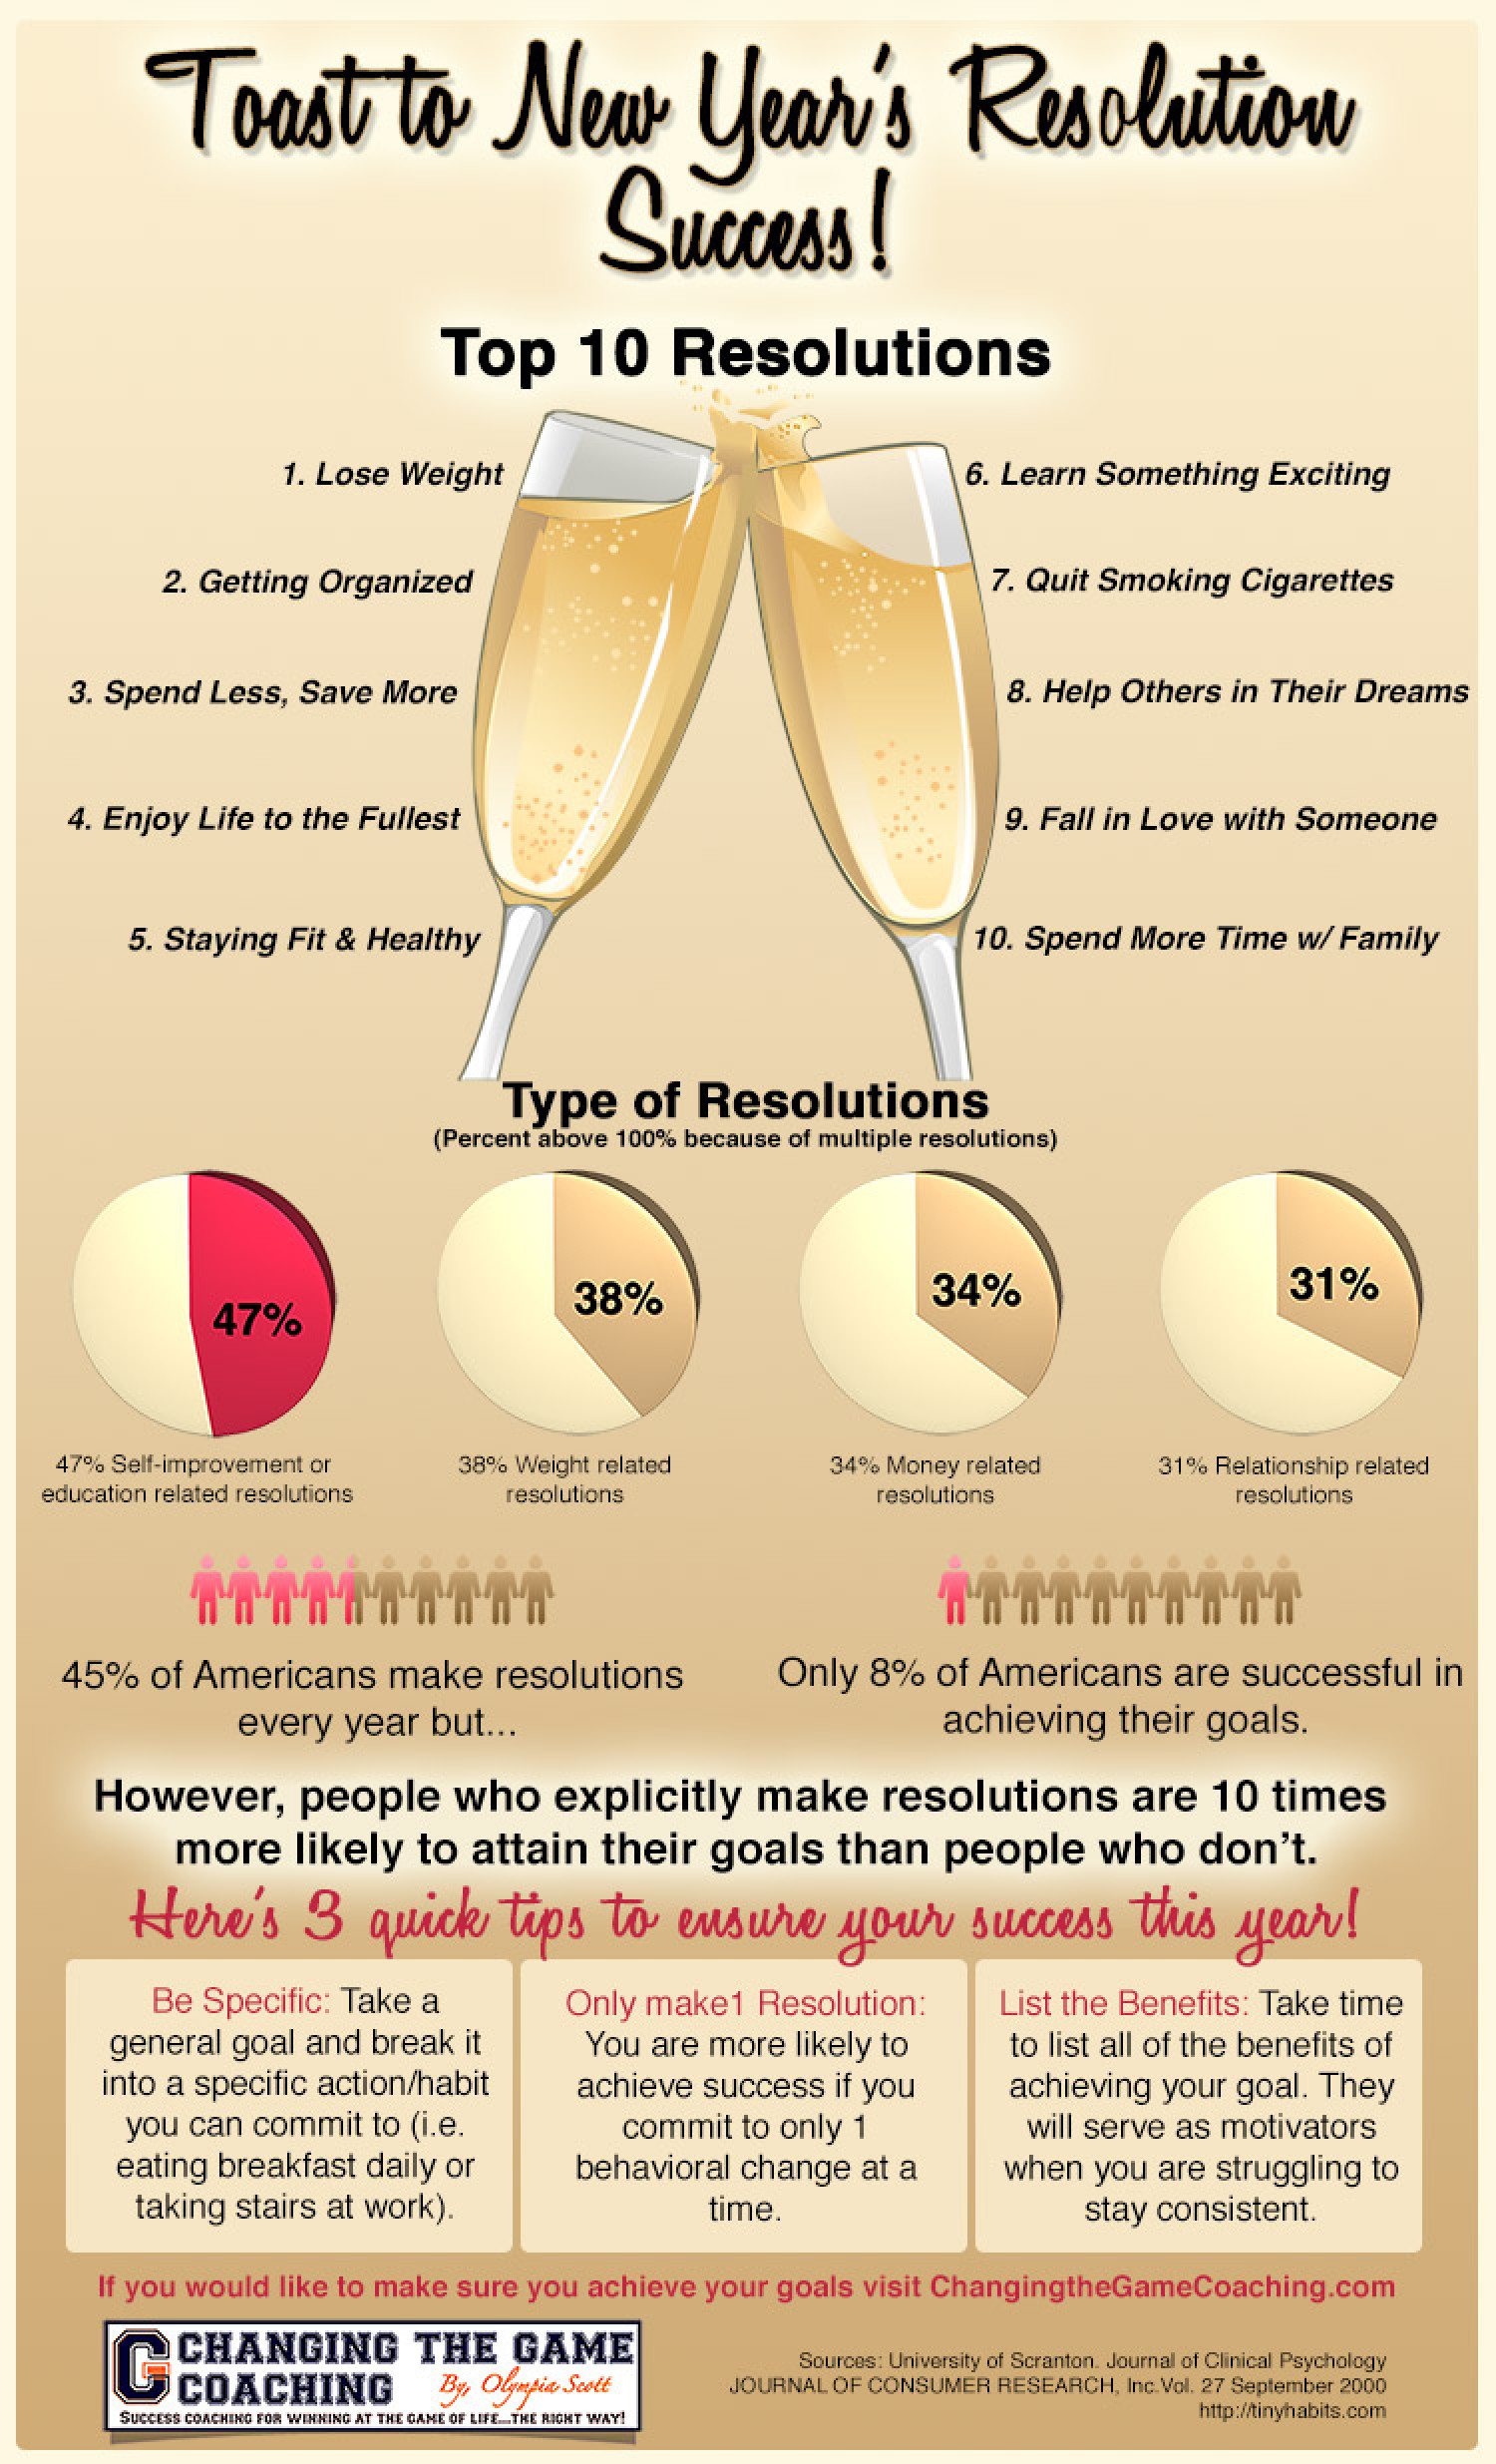 Toast to New Year's Resolution Success Infographic